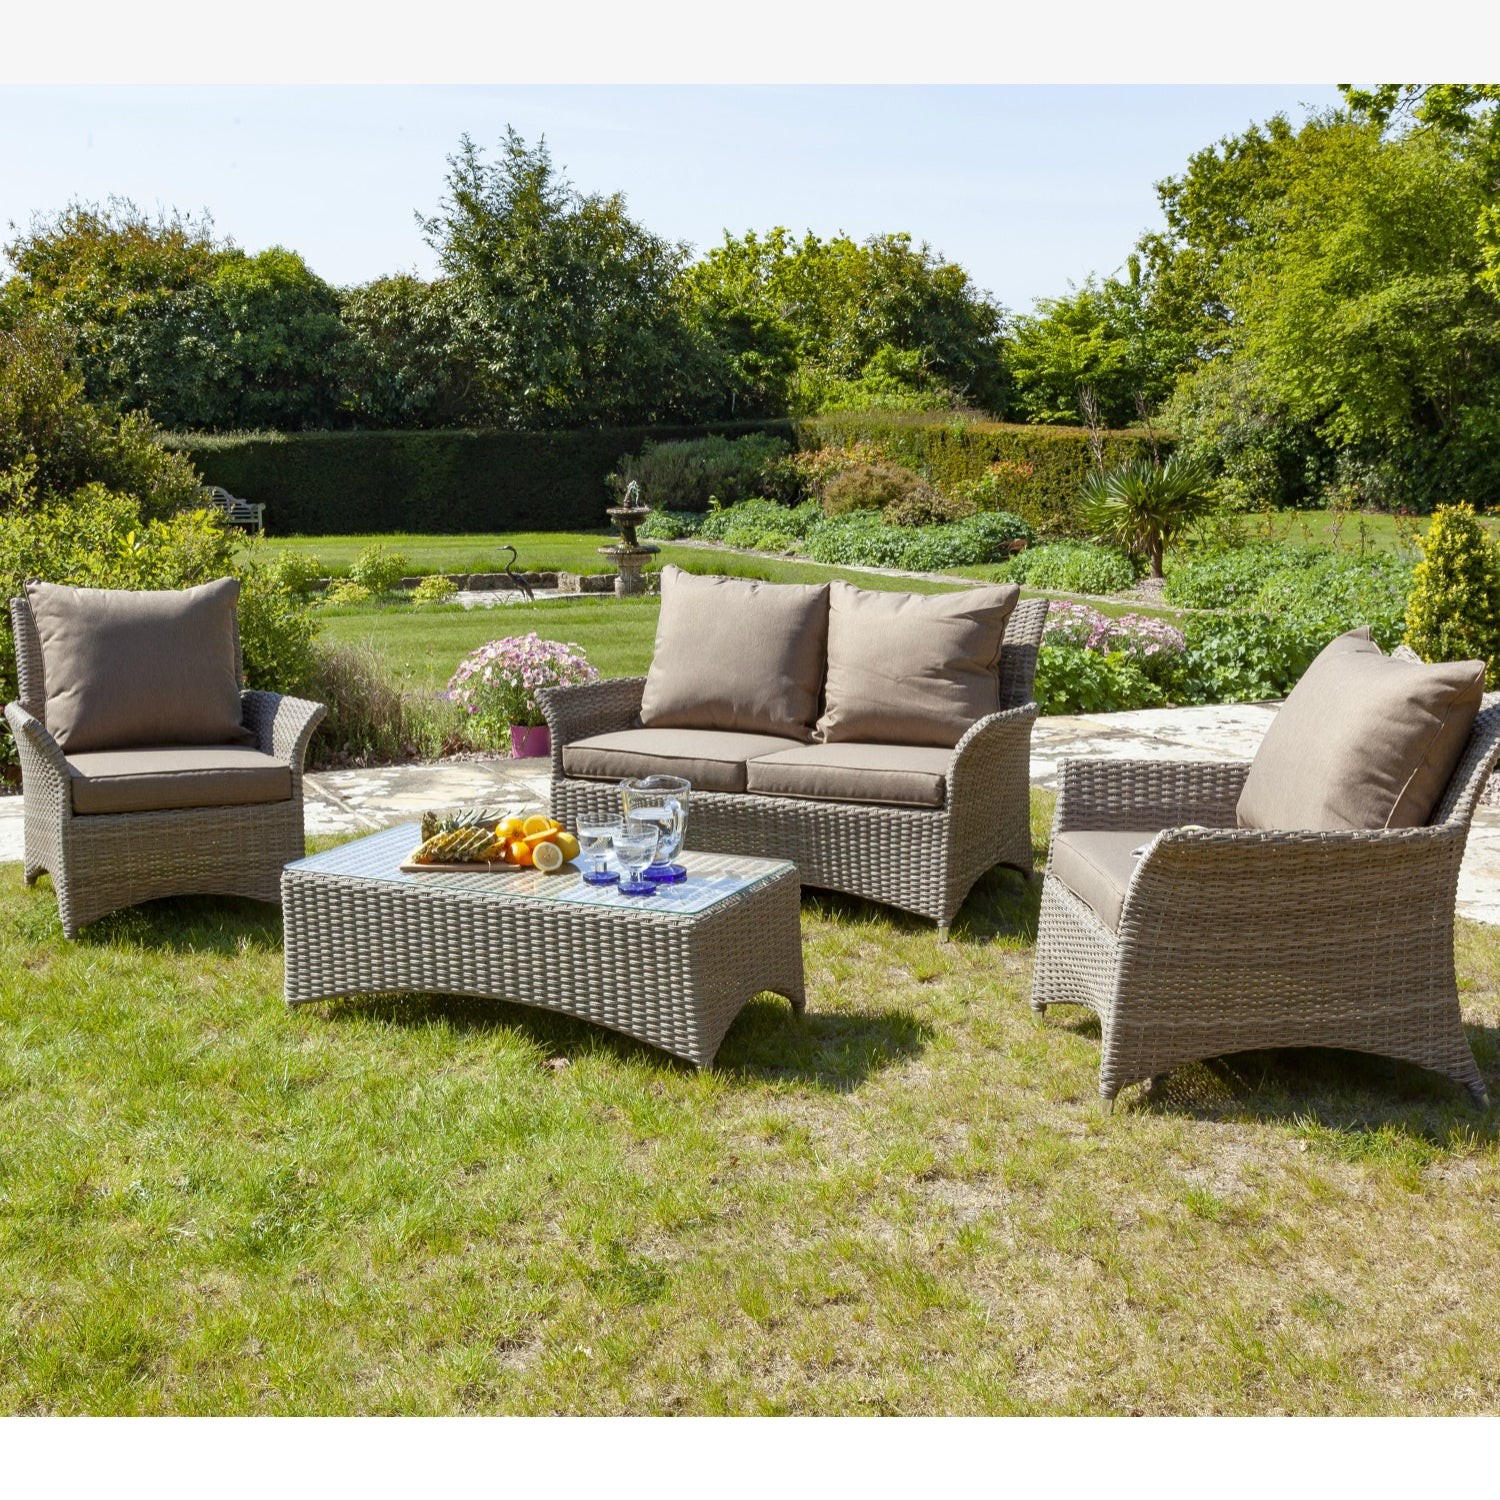 Galleon Mimosa 4 Seater Sofa Set